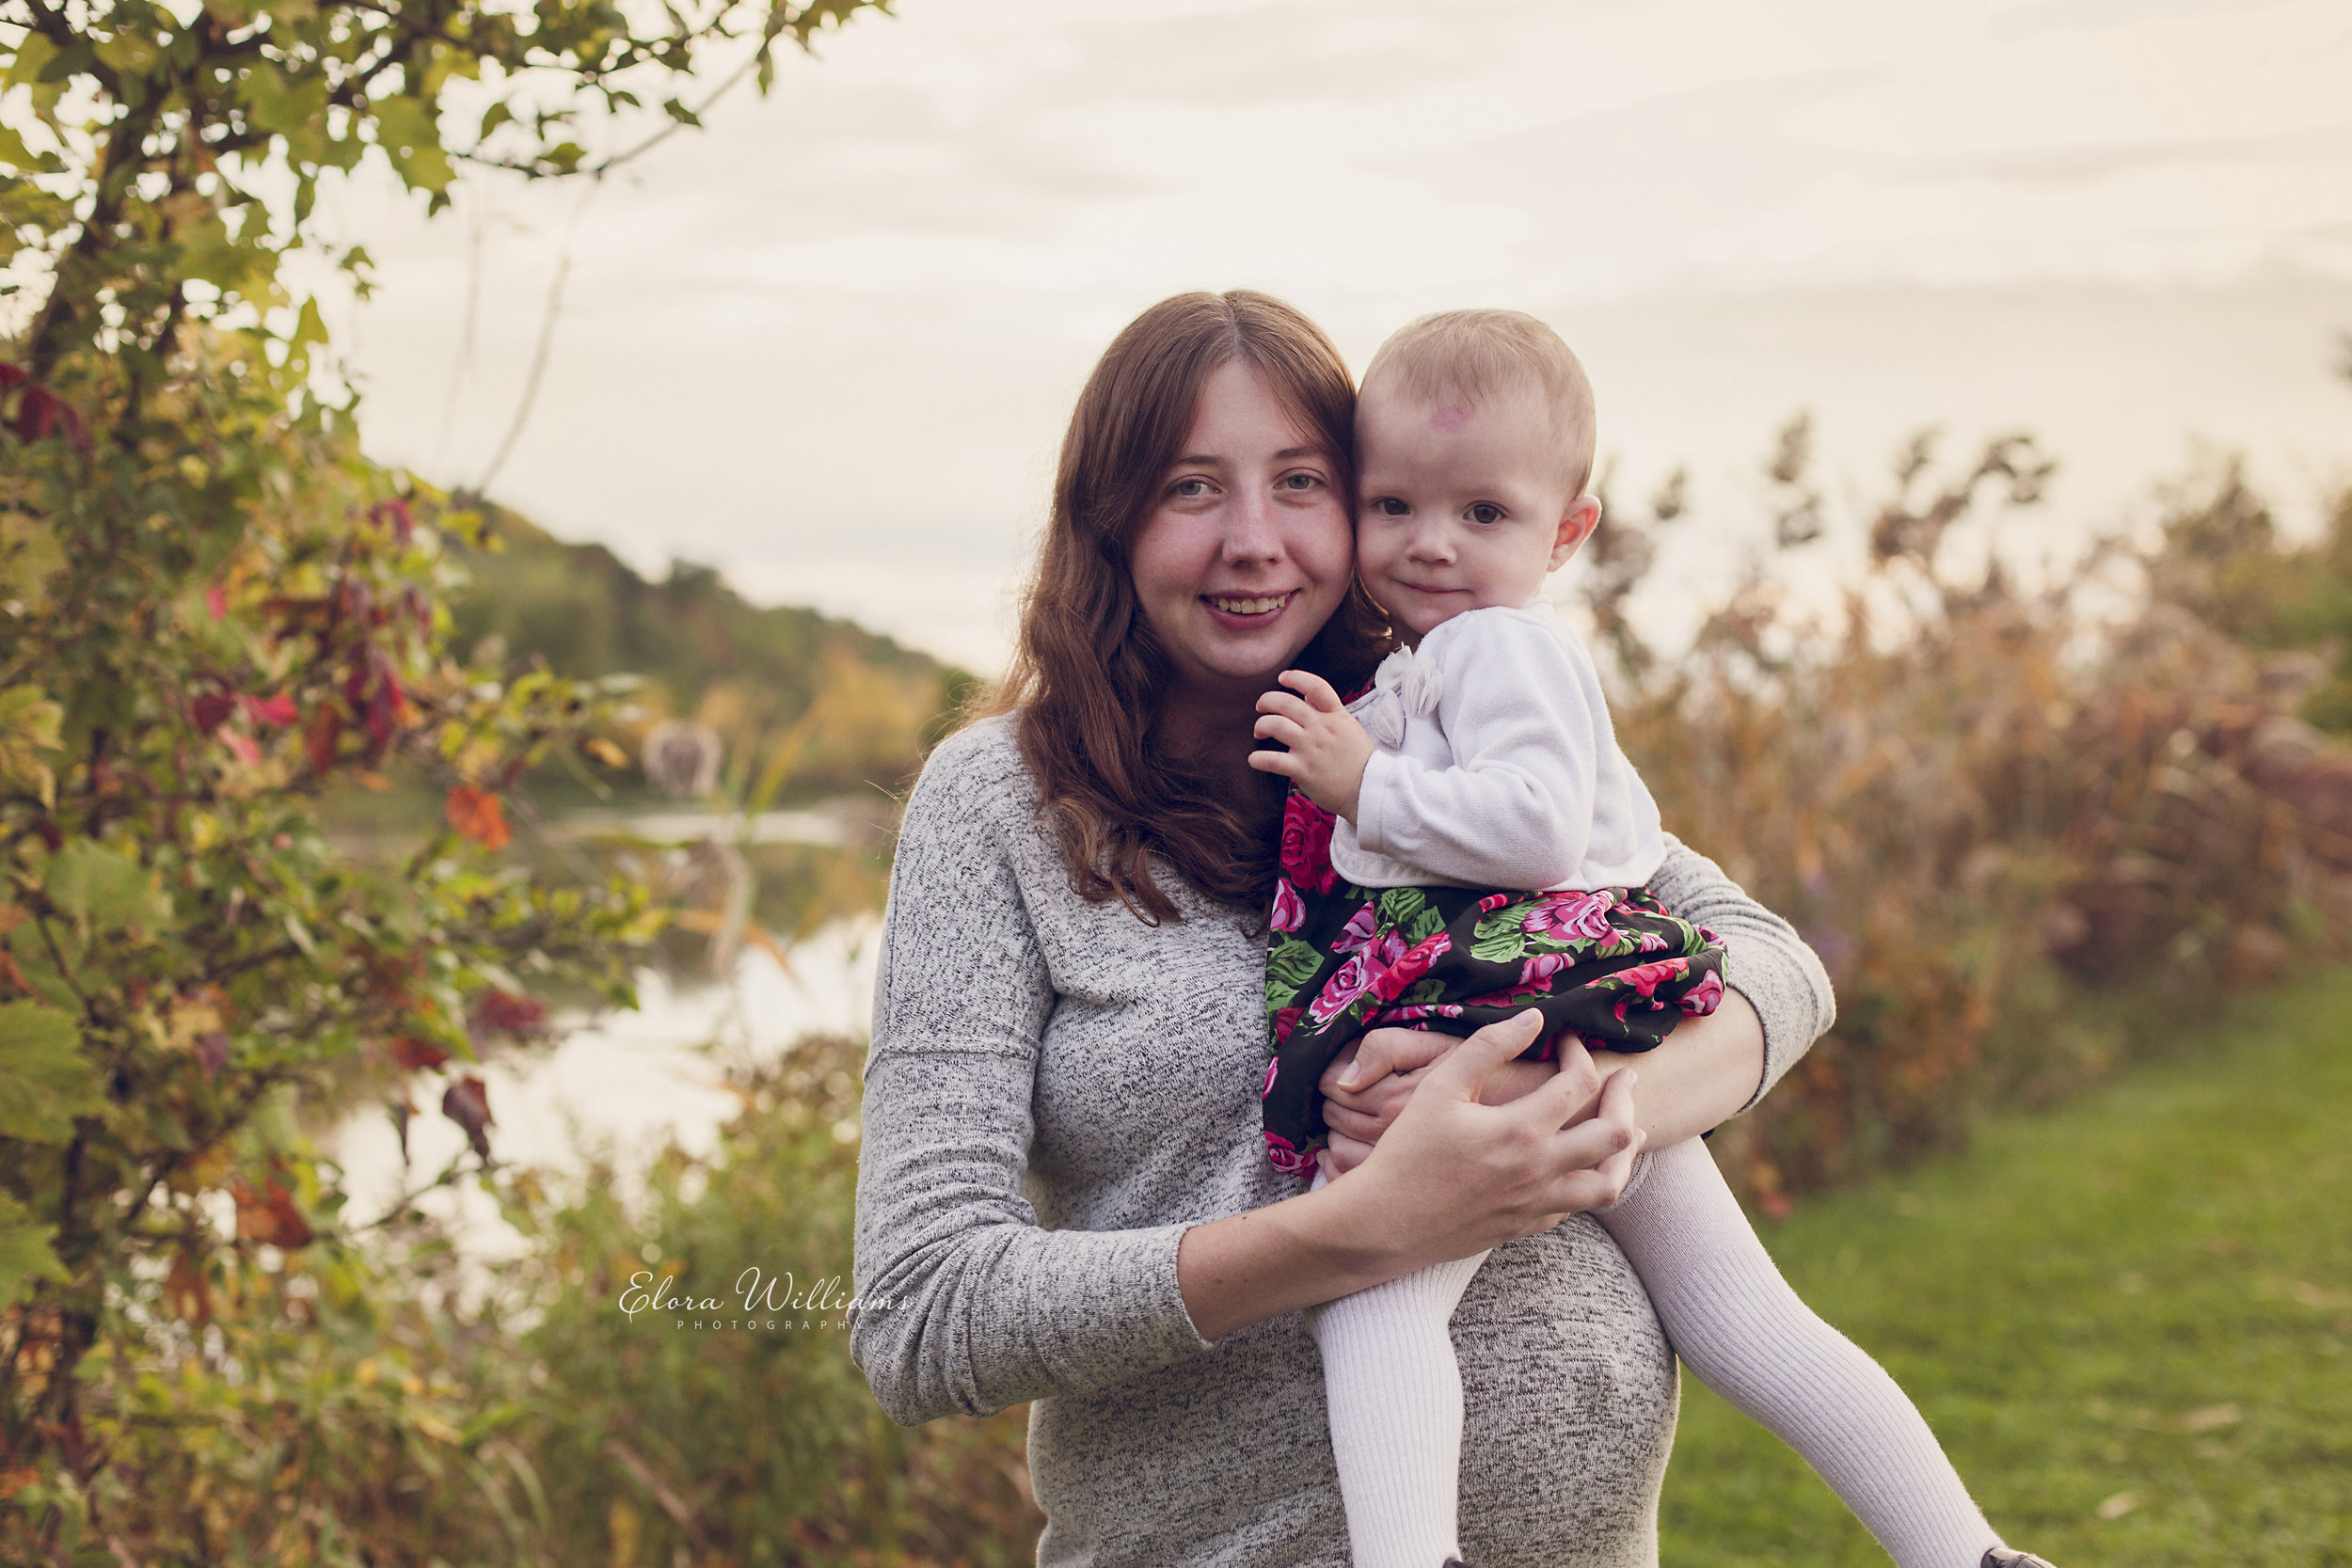 Outdoor Maternity |  St Catharines, Elora Williams Photography